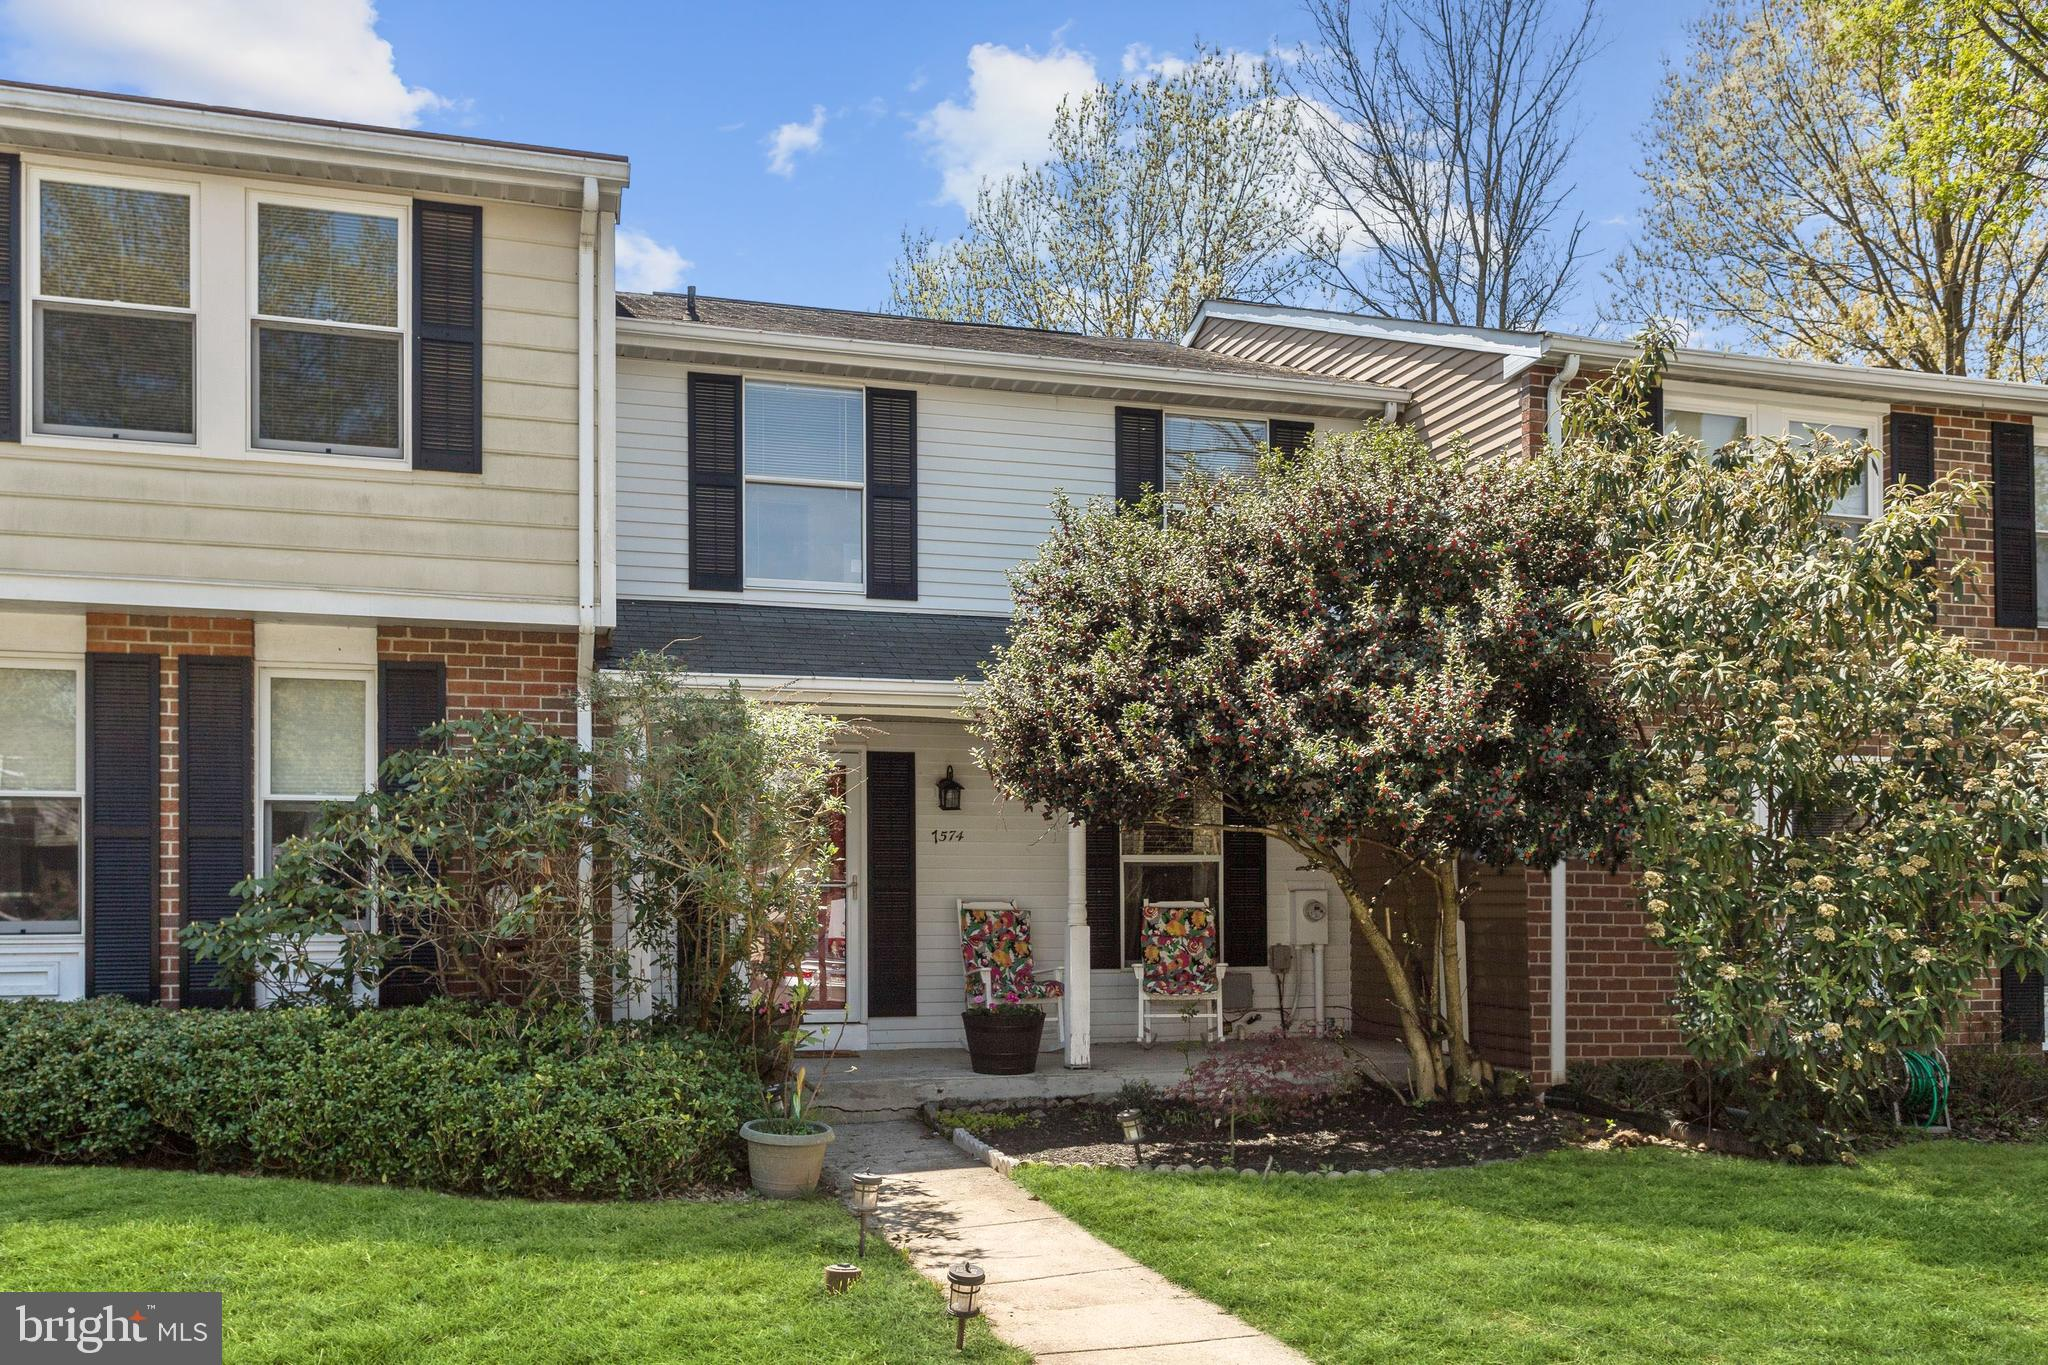 Lovely Colonial in Columbia's Village of King's Contrivance community boasts updates including wide